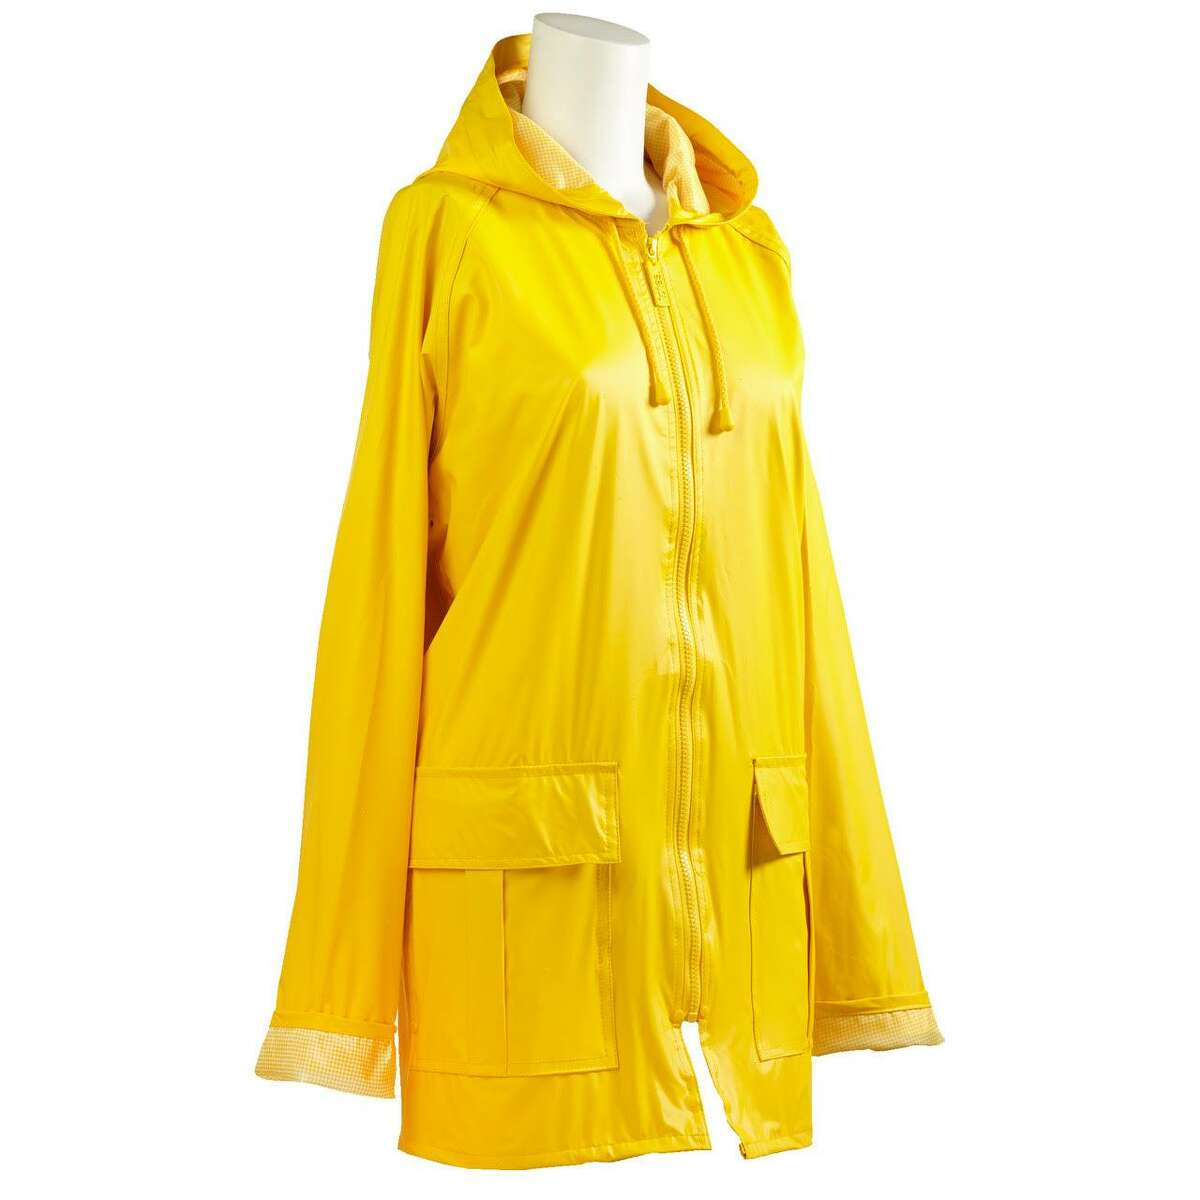 This easy-to-pack rain slicker by Totes brightens up a dreary day in several vibrant colors.